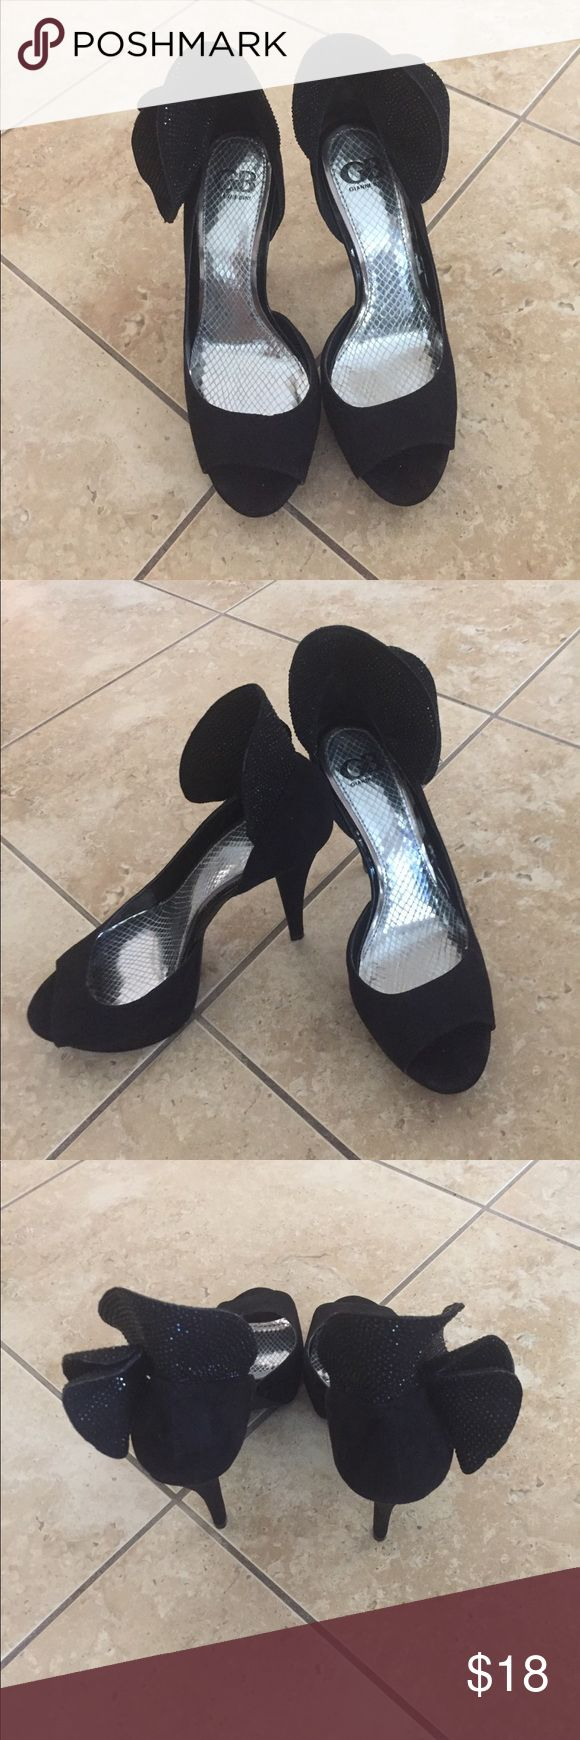 Black Open Toe Shoes Worn several times - still in good condition - the heel is about 5 inches Gianni Bini Shoes Heels